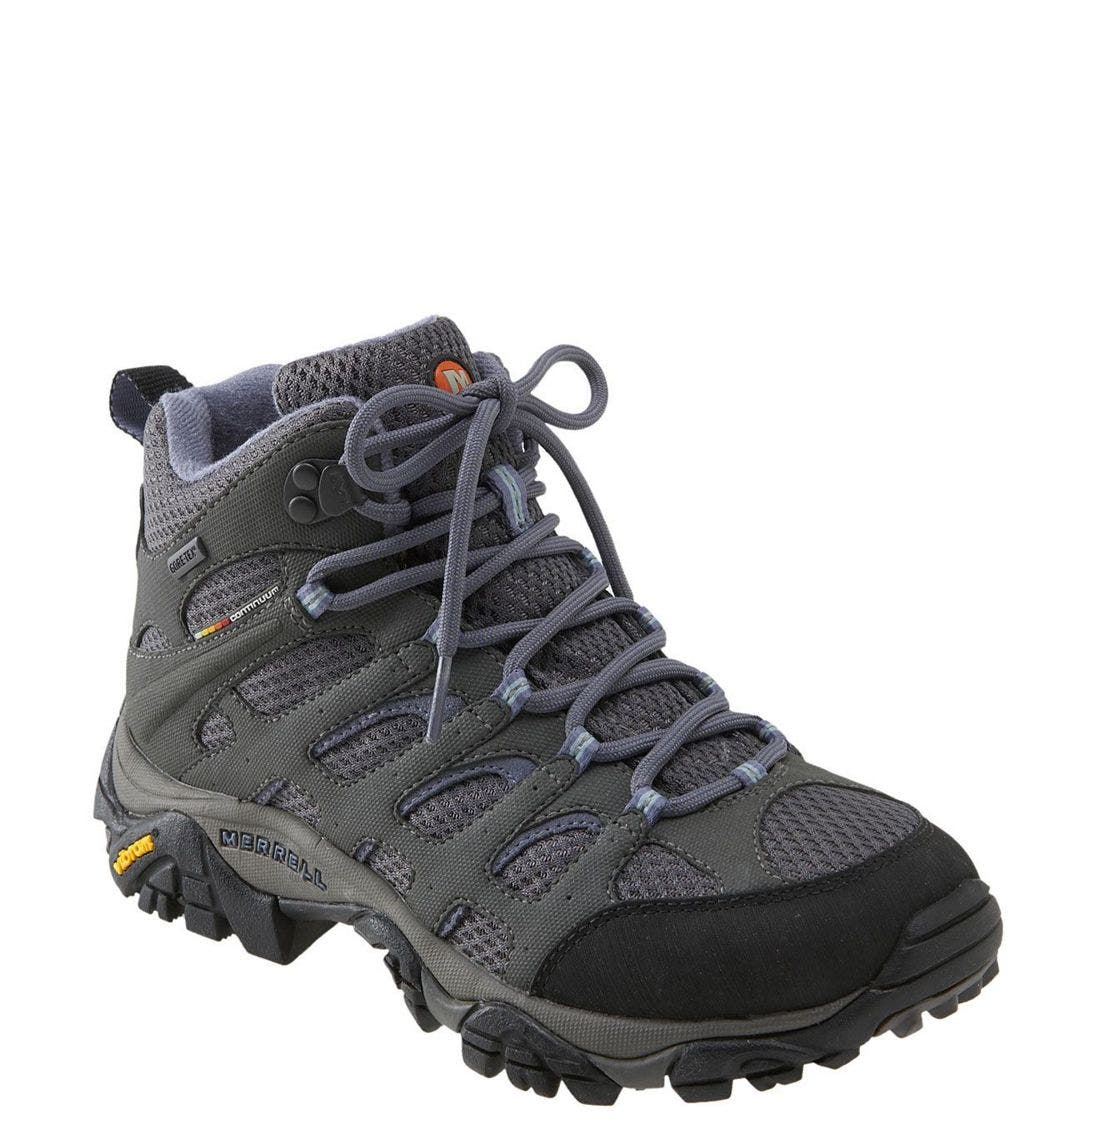 Main Image - Merrell 'Moab Mid GTX XCR' Hiking Boot (Women)